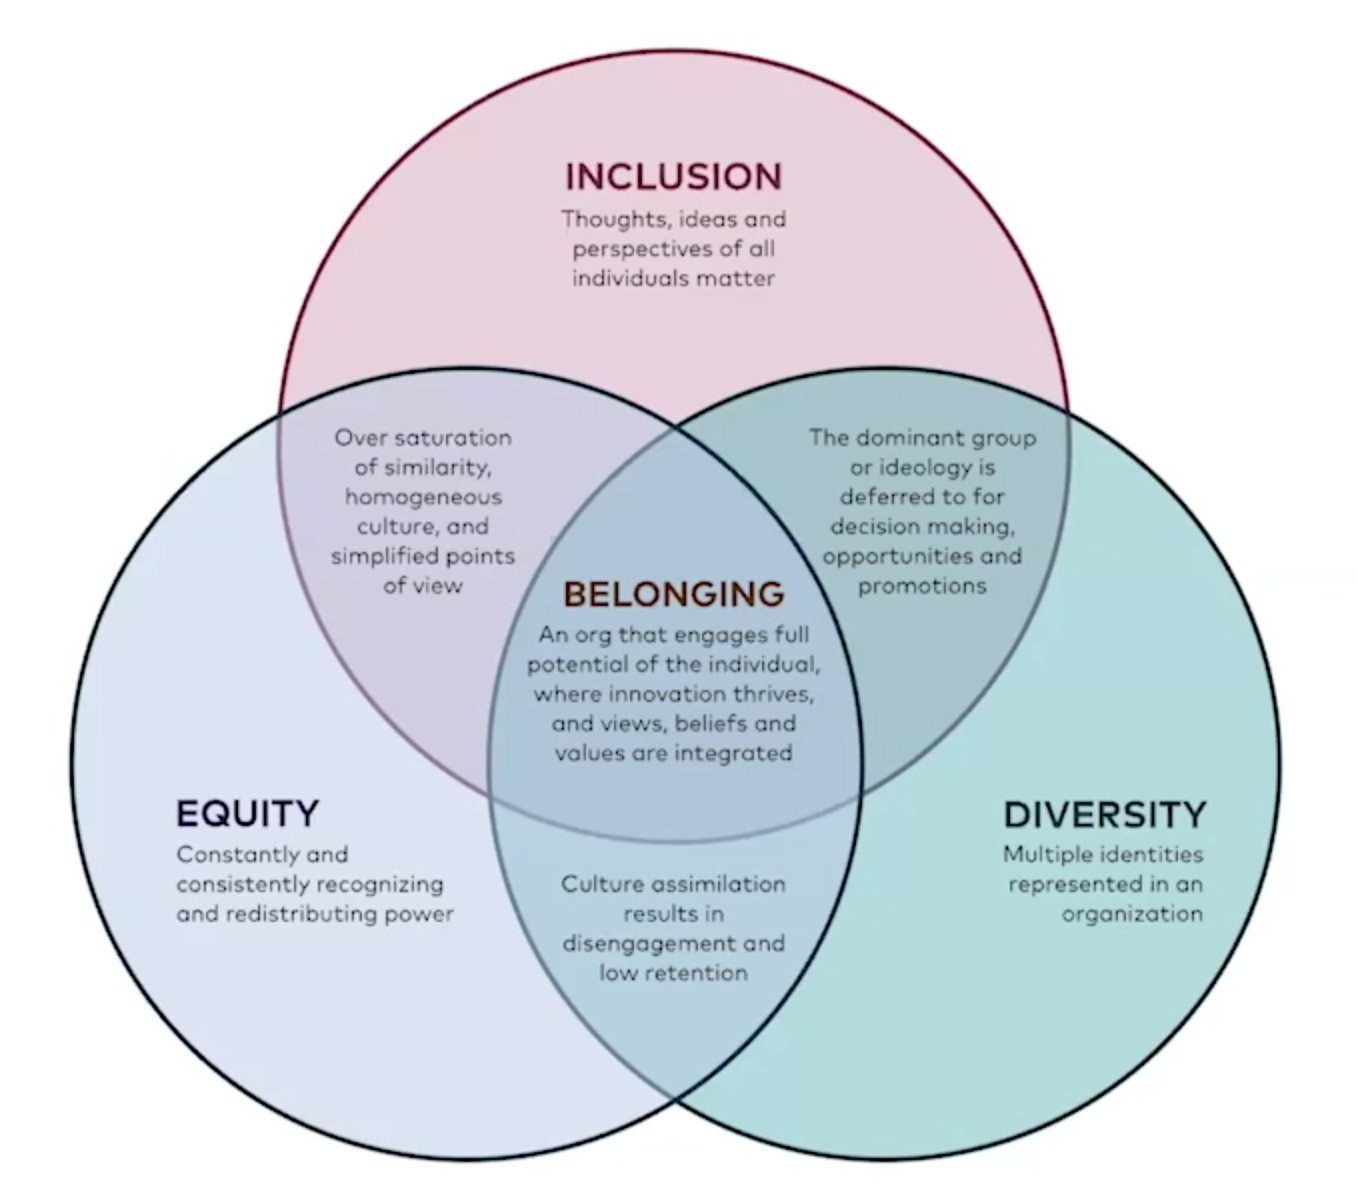 Diversity, Inclusion, Equity, and Belonging